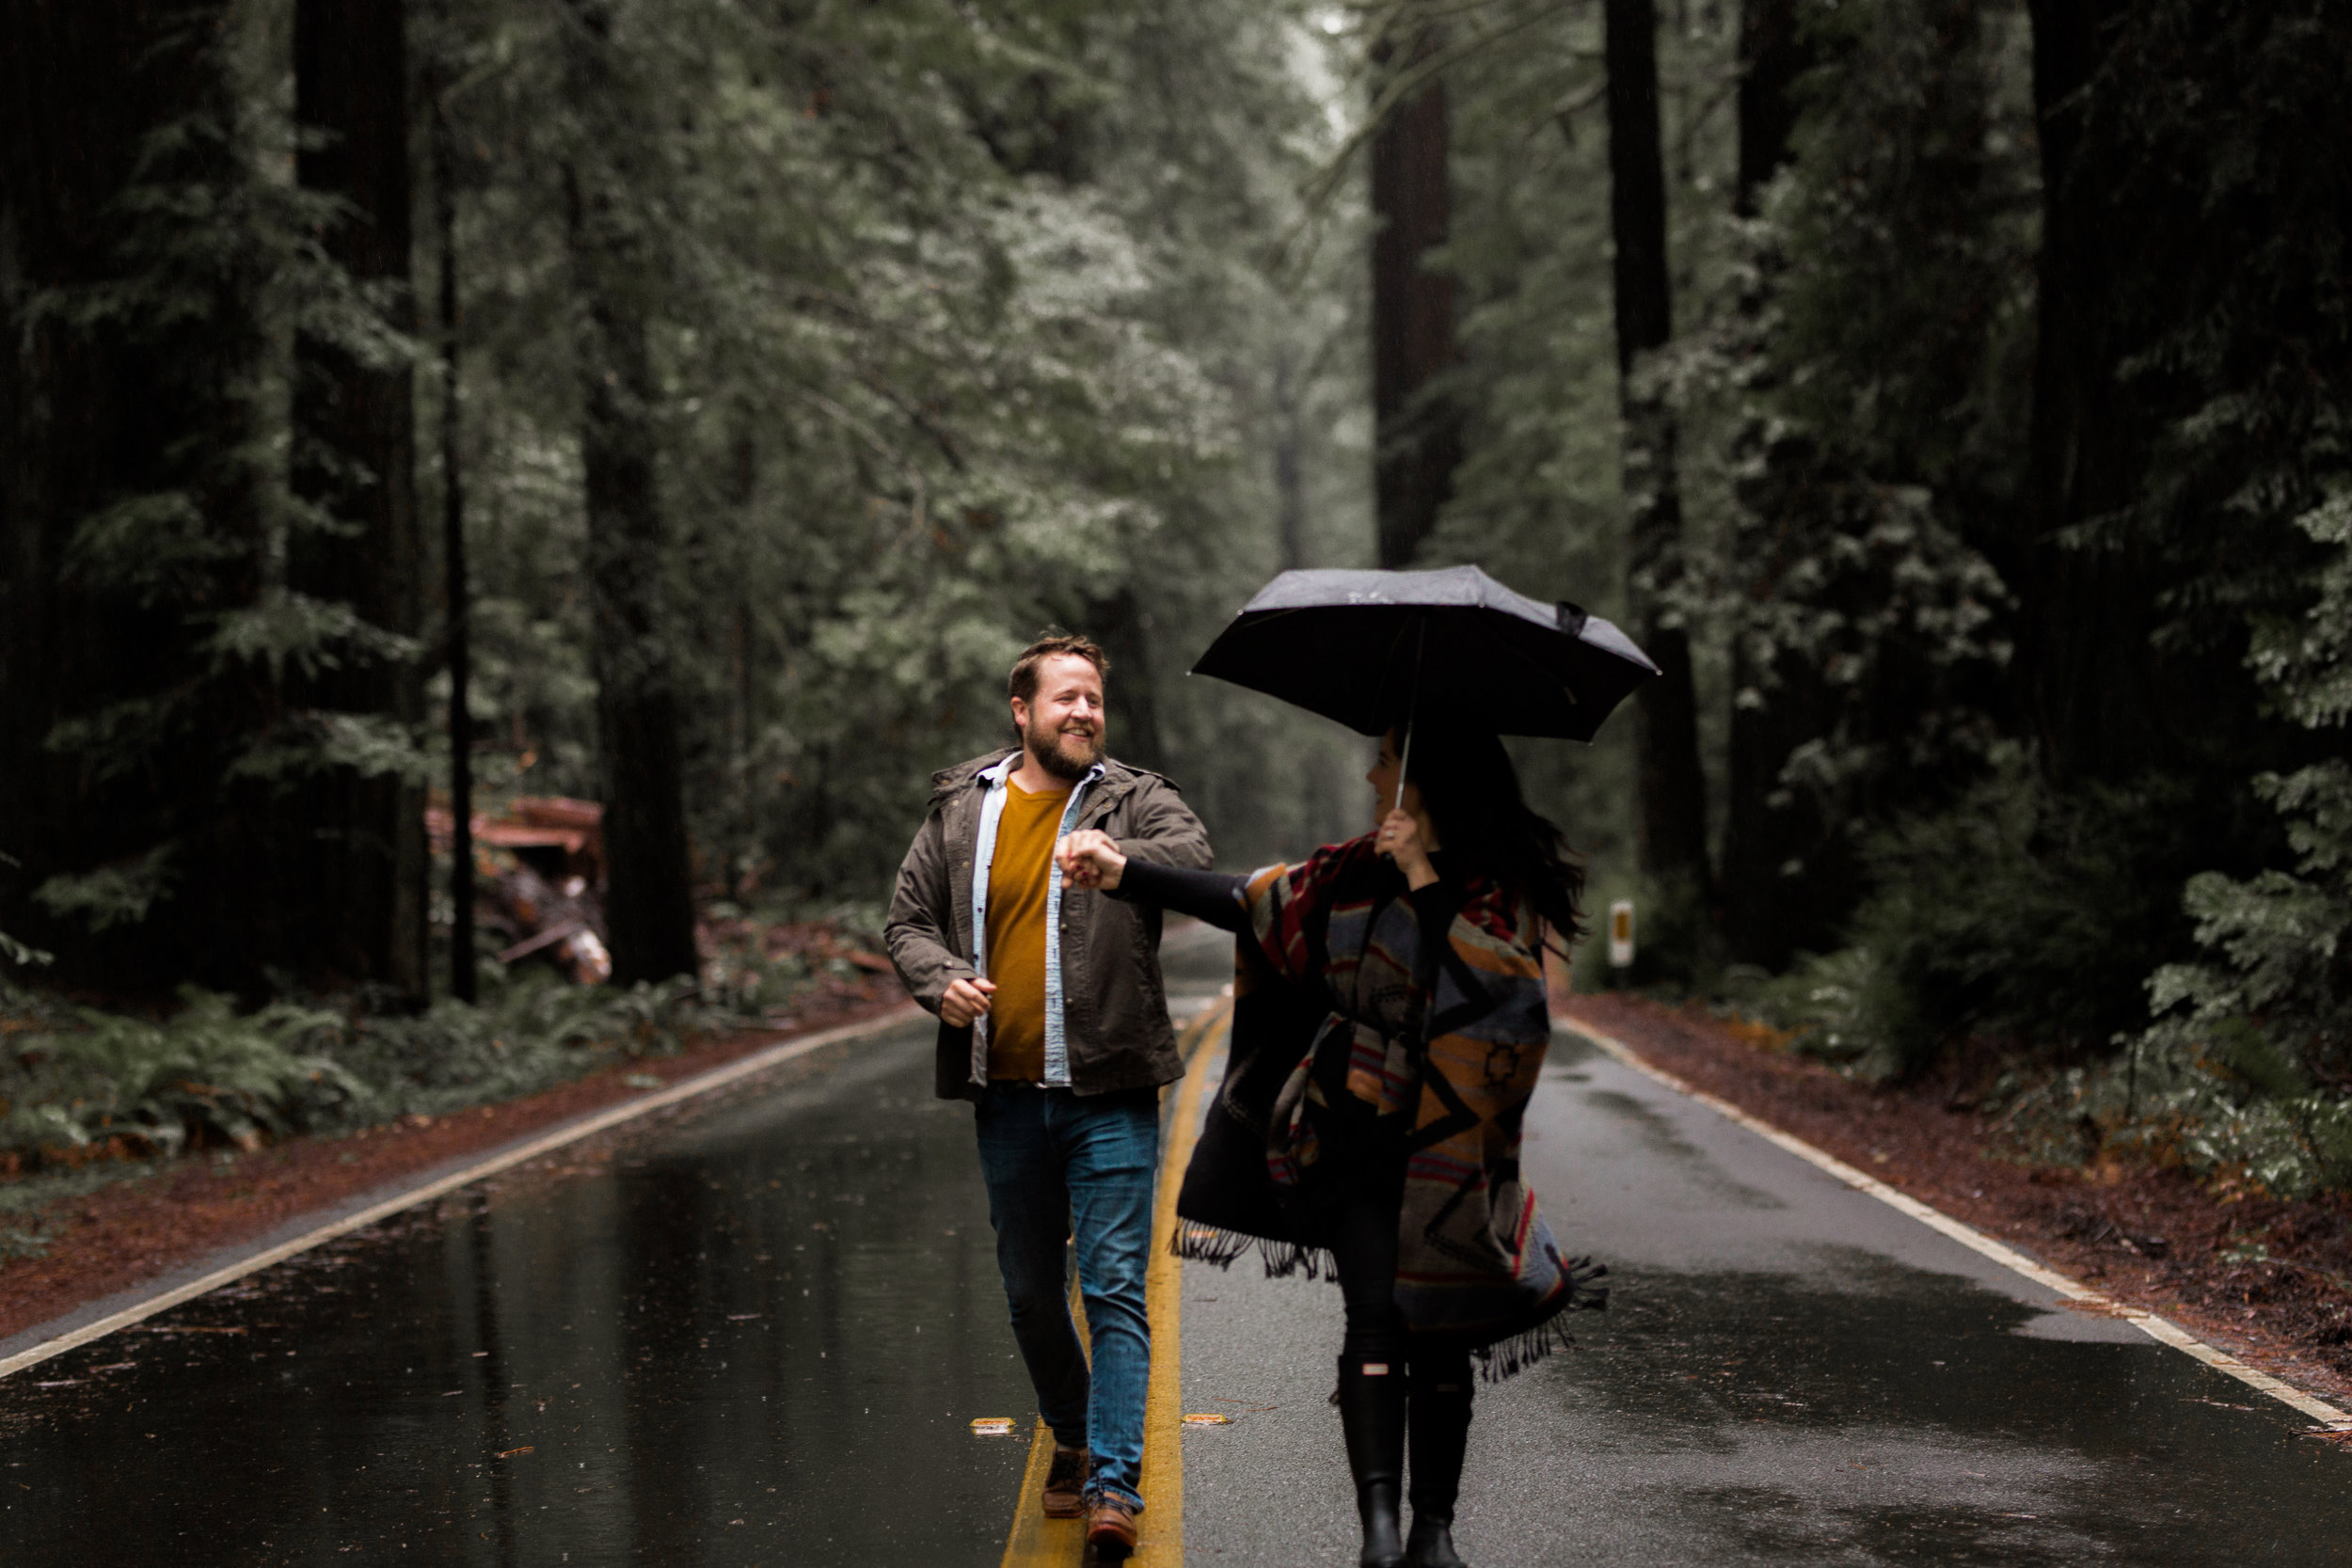 nicole-daacke-photography-redwoods-national-park-forest-rainy-foggy-adventure-engagement-session-humboldt-county-old-growth-redwood-tree-elopement-intimate-wedding-photographer-2.jpg